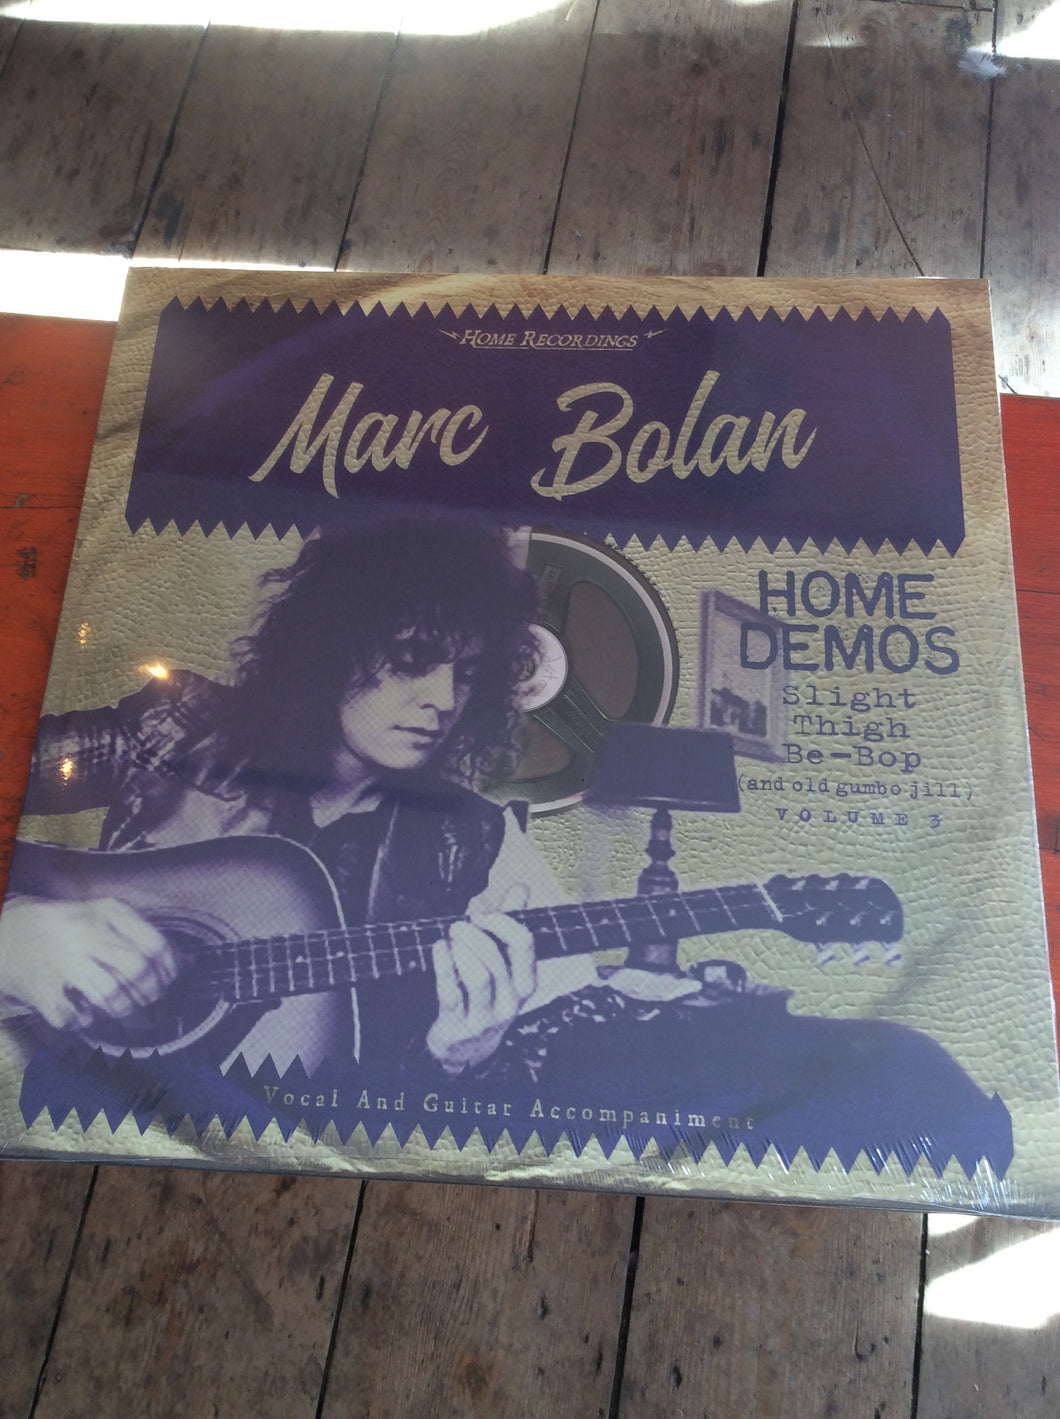 Marc Bolan - Slight Thigh Be-Bop (And Old Gumbo Jill) : Home Demos Volume 3